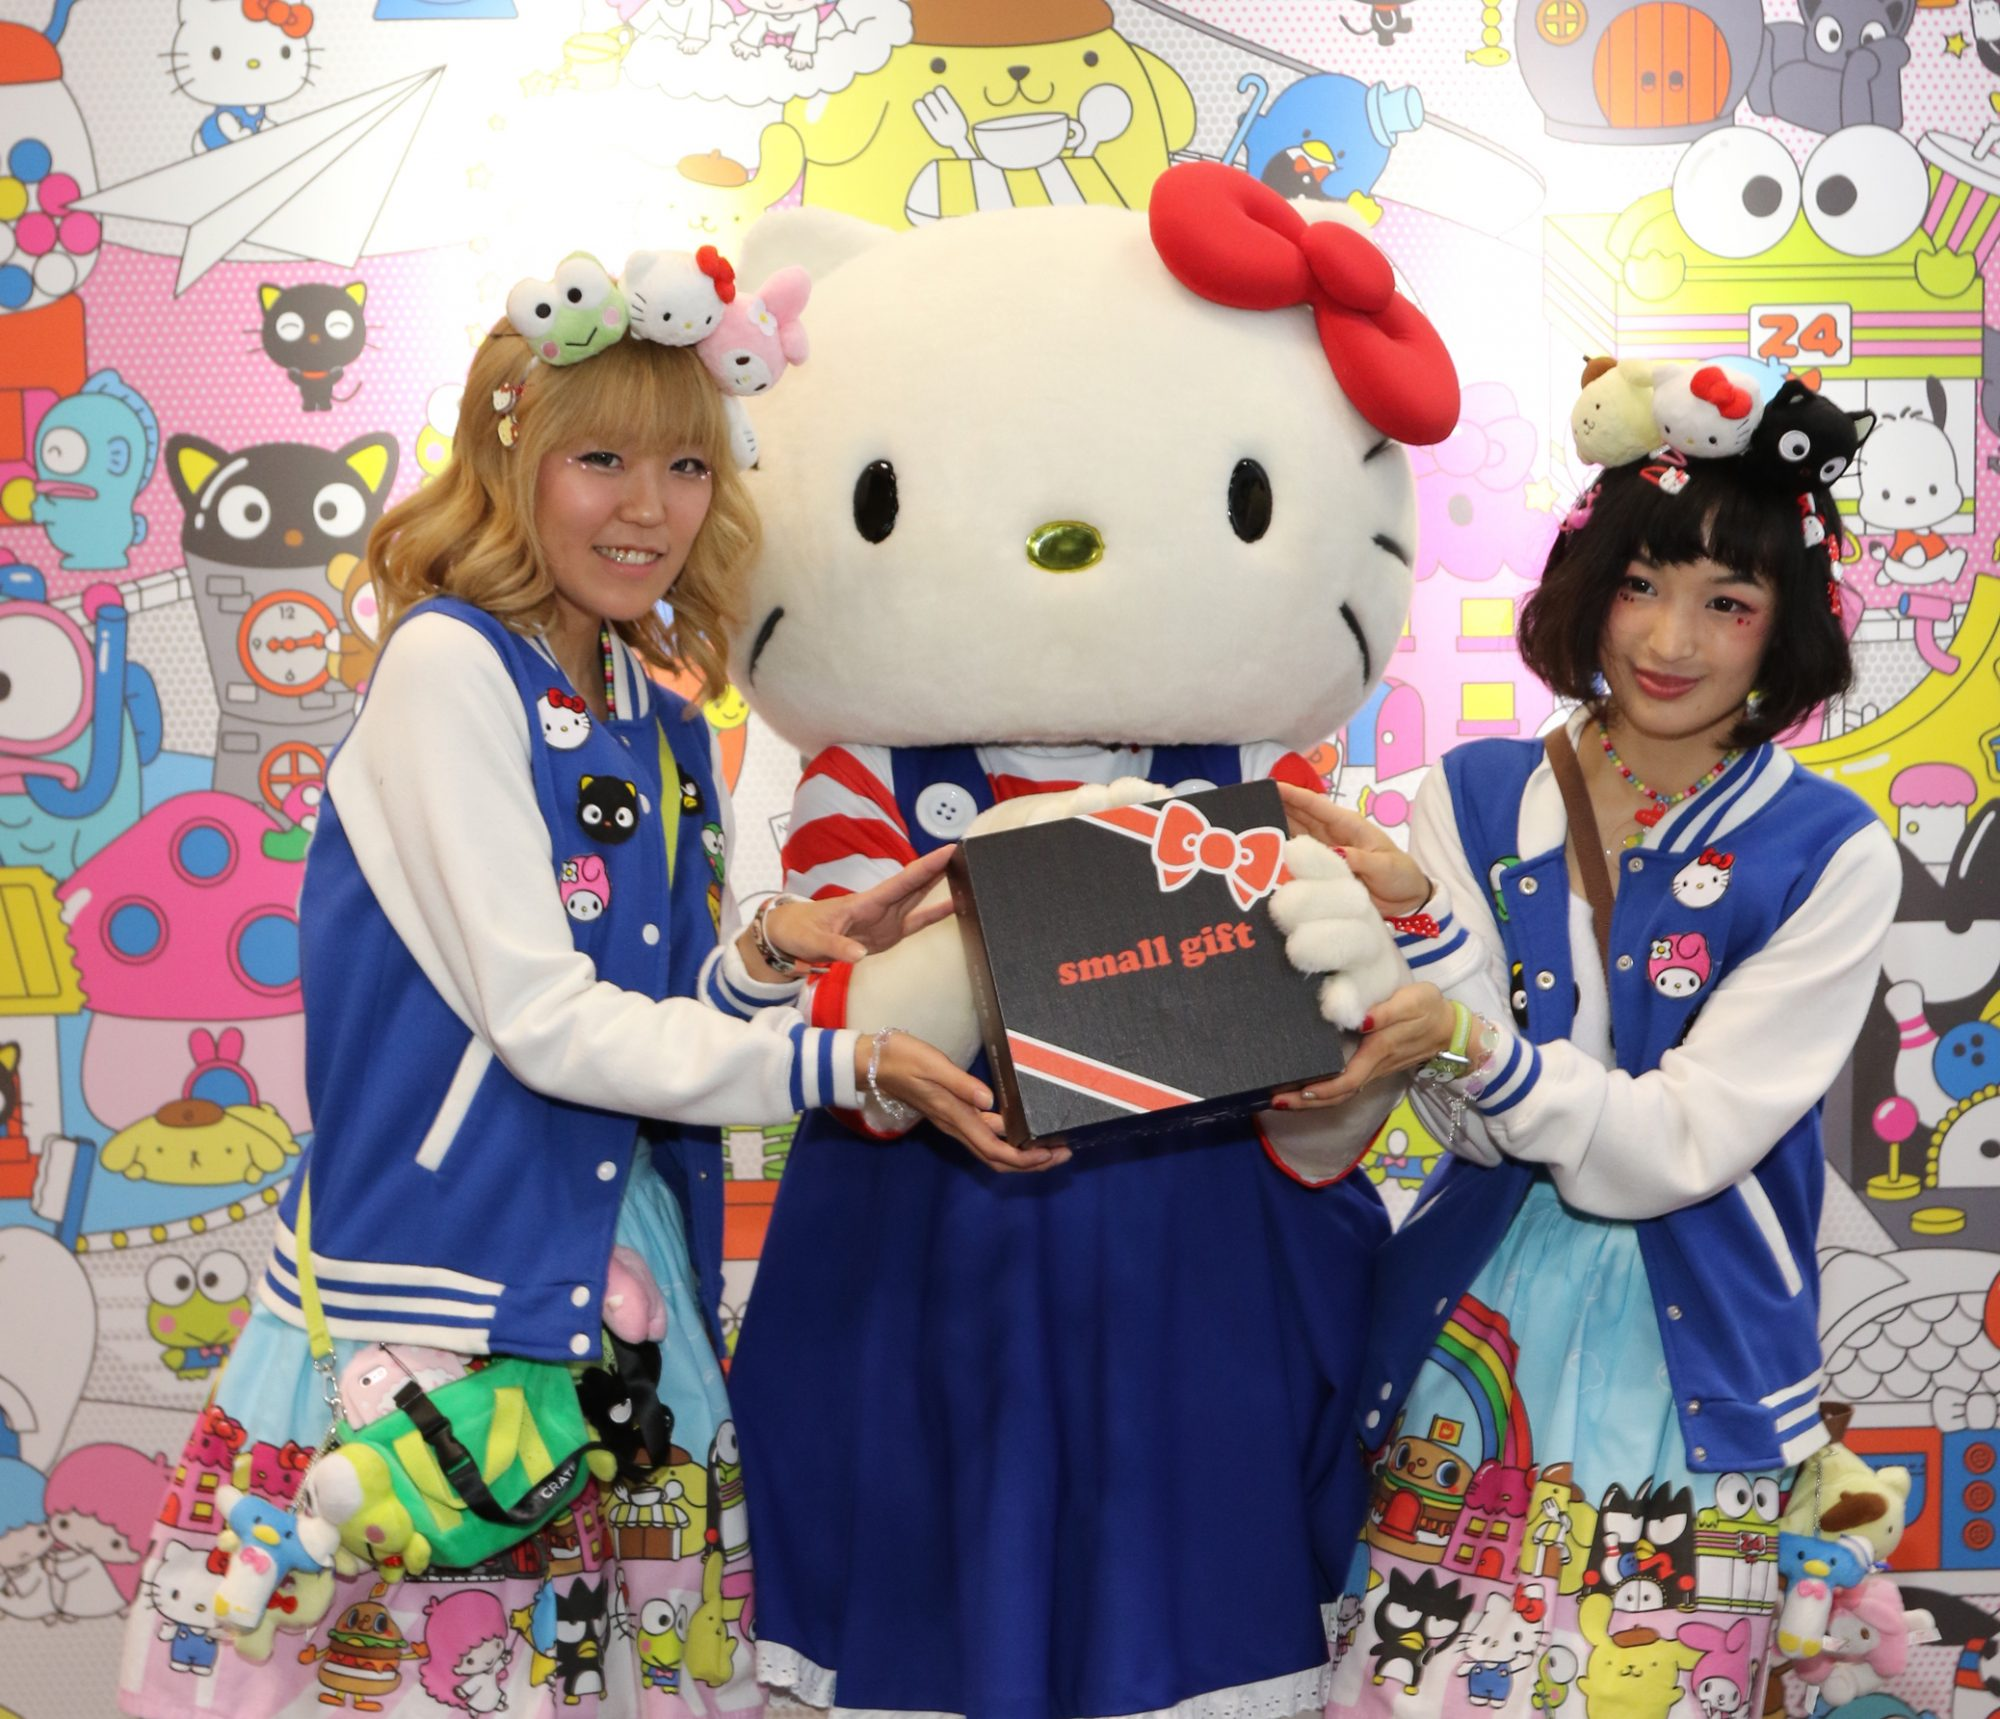 Hello Kitty & Sanrio Ambassadors with Sanrio 'Small Gift' Crate - Loot Crate Booth  New York Comic-Con